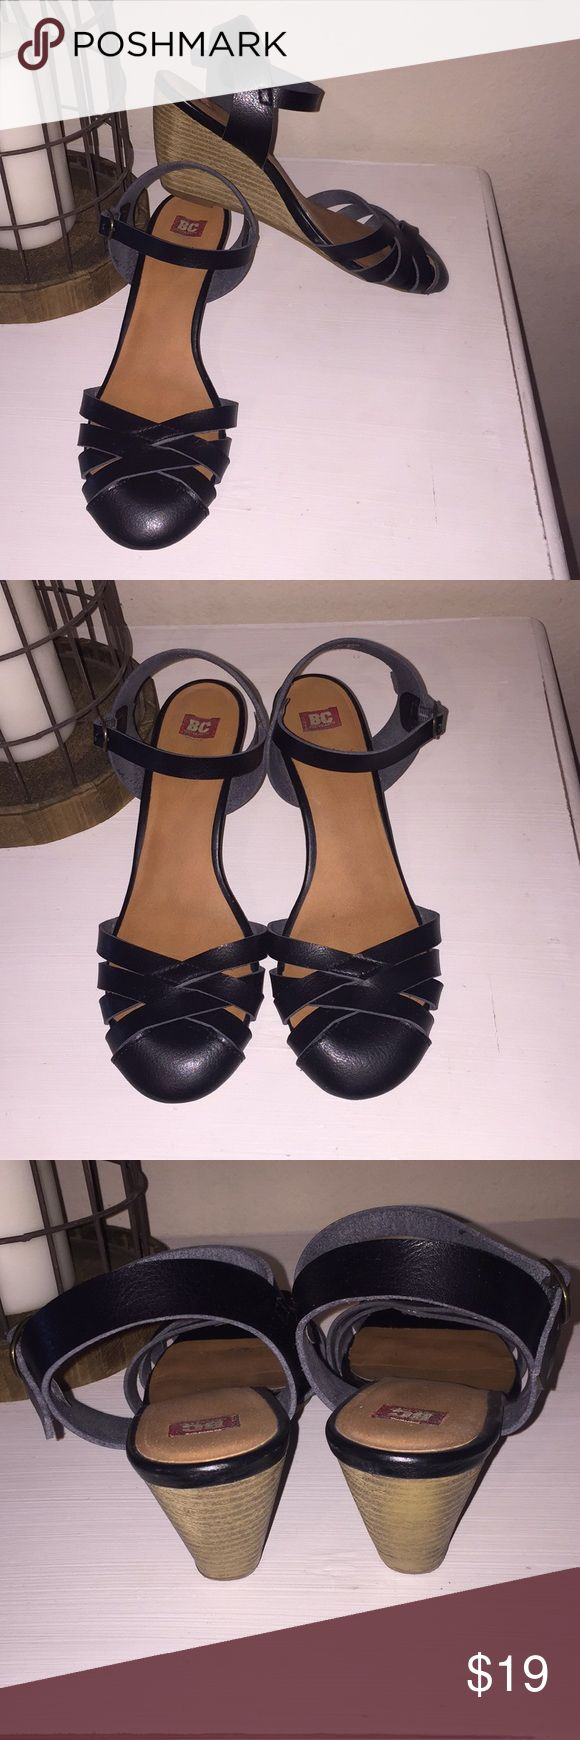 BC Footwear Black Strappy Wedges, Size 8.5 BC Footwear Black Strappy Wedges, Size 8.5. These wedges are so cute and can be dressed up or dressed down! The modest heel and wedge allow for comfort and stability. There is a closed toe for when you need to look cute, but your polish may not be on point 😝Good used condition, they have been well loved, but still have life left. I do not have the original box. *Note: Flash used due to dreary day. BC Footwear Shoes Wedges